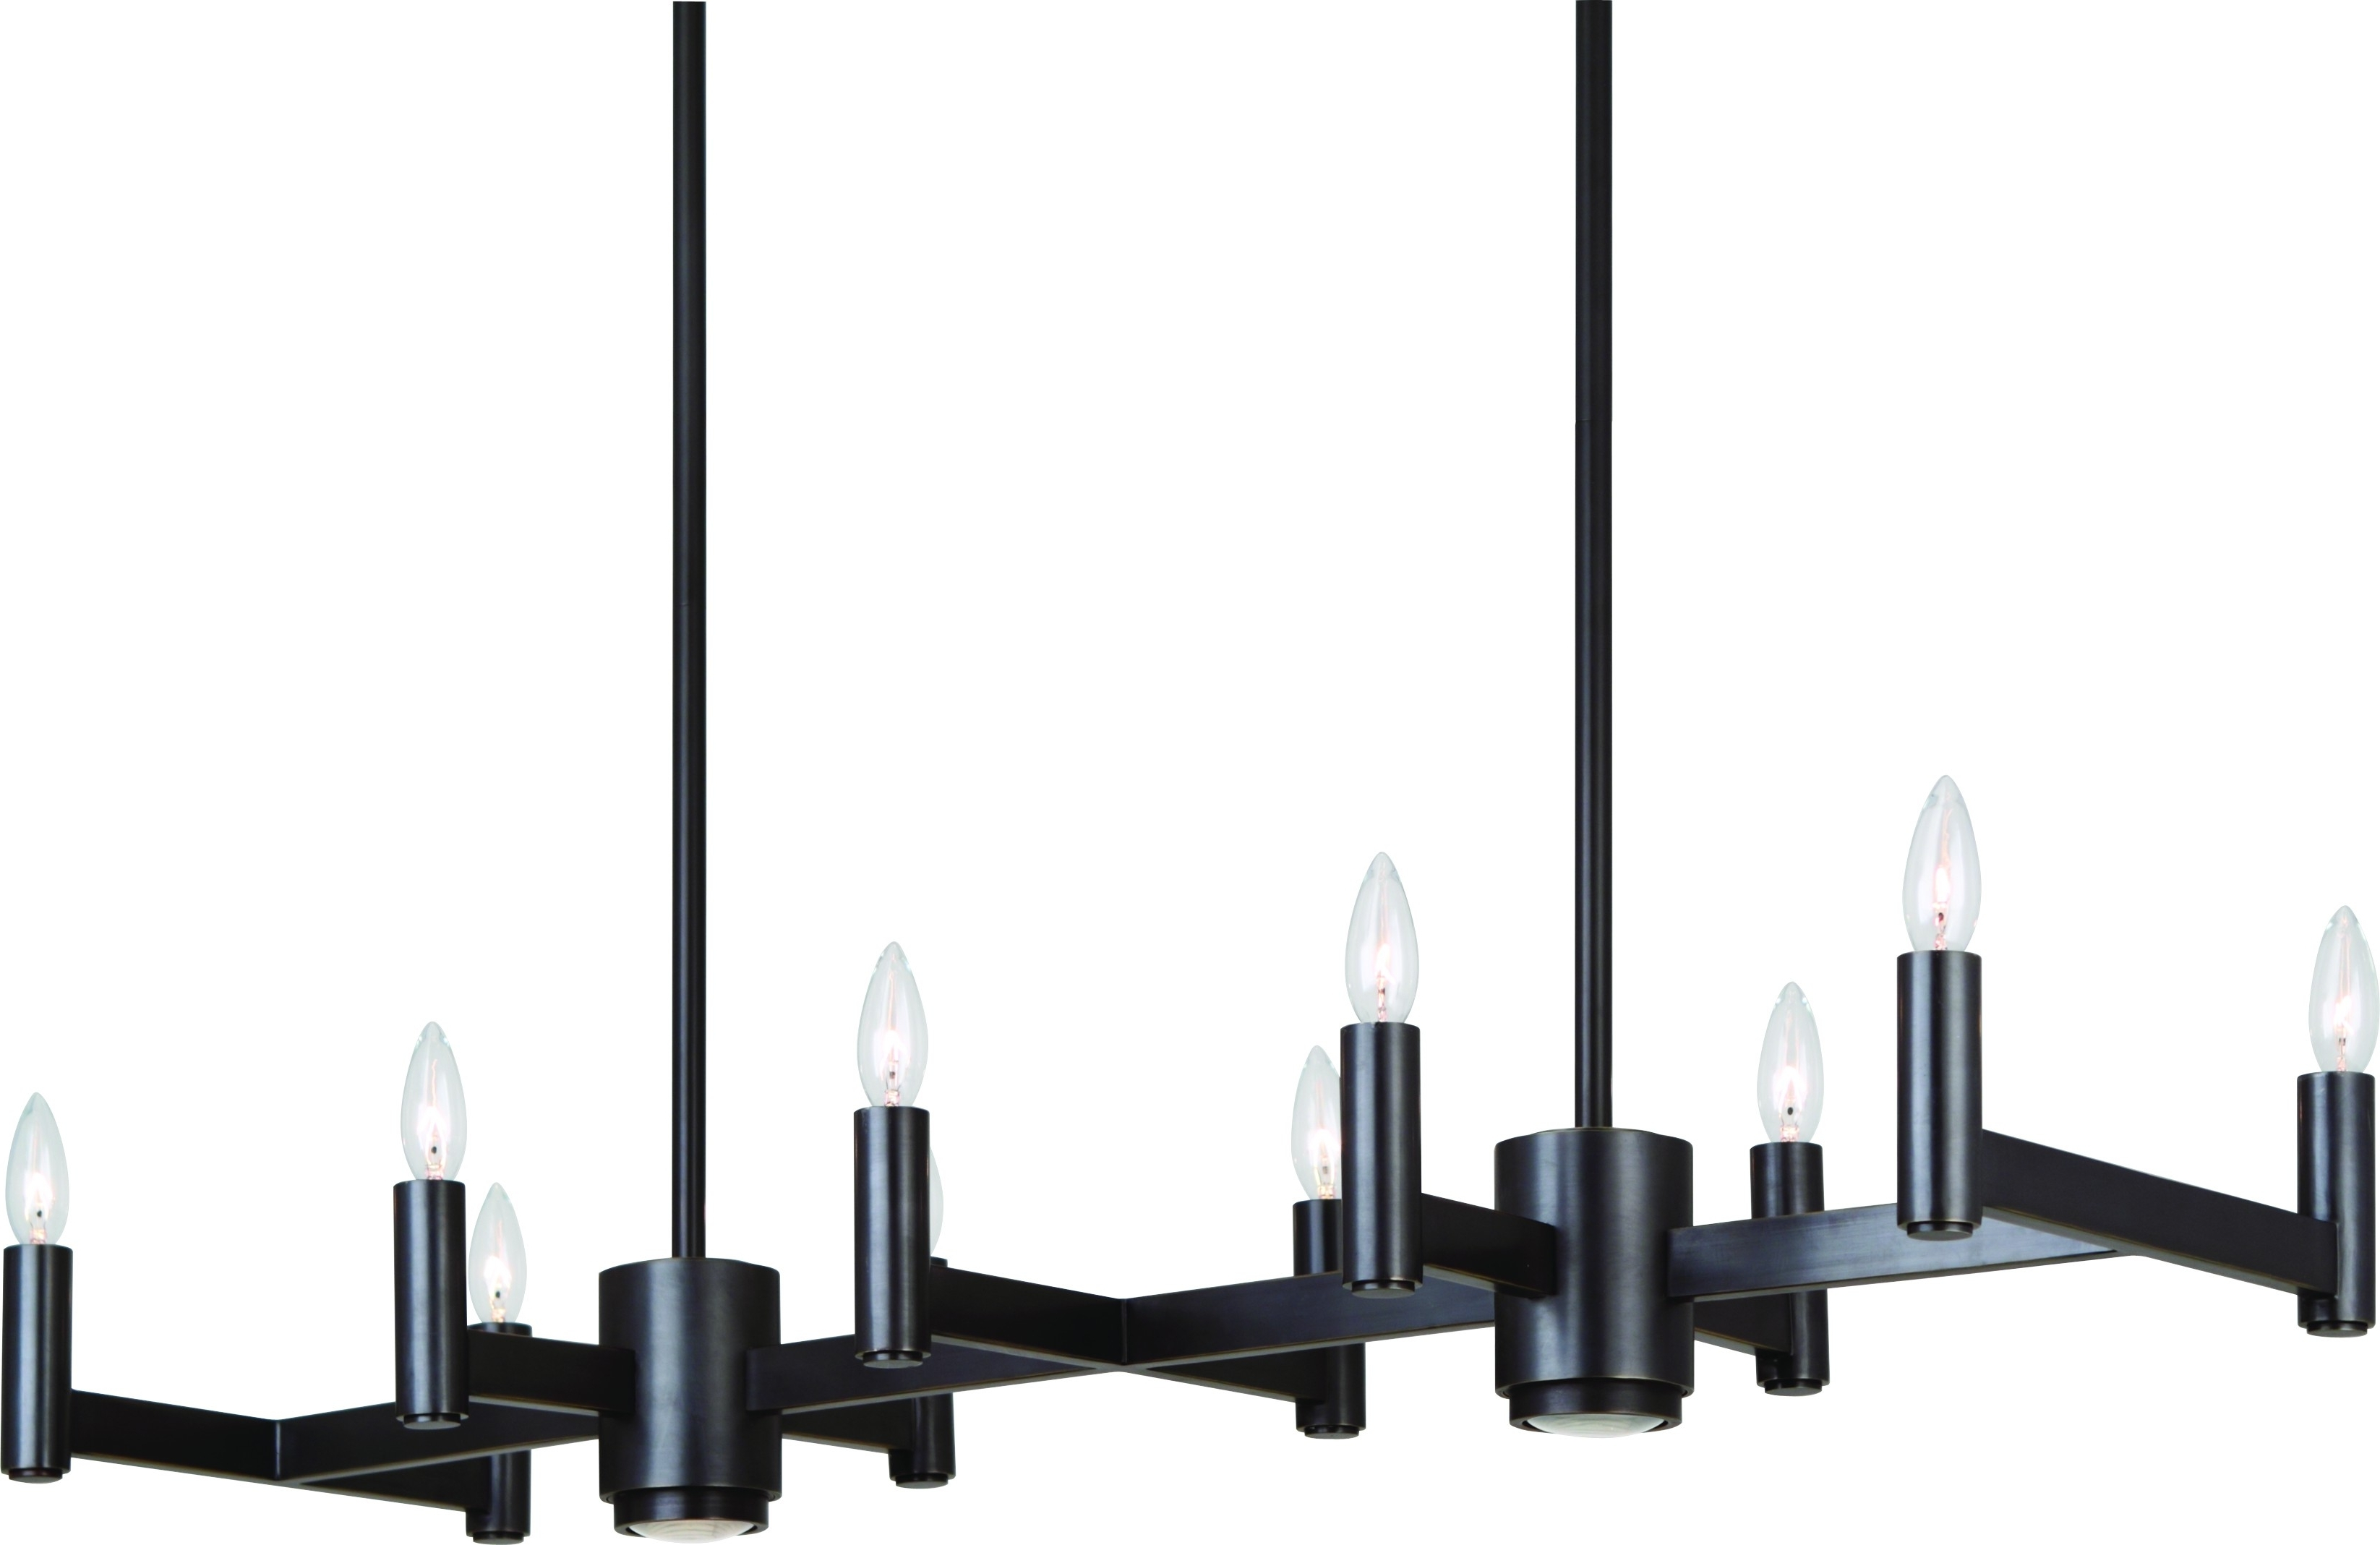 Most Up To Date Modern Wrought Iron Chandeliers Within Hanging Rectangular Modern Black Wrought Iron Chandeliers With Lamp (View 2 of 20)